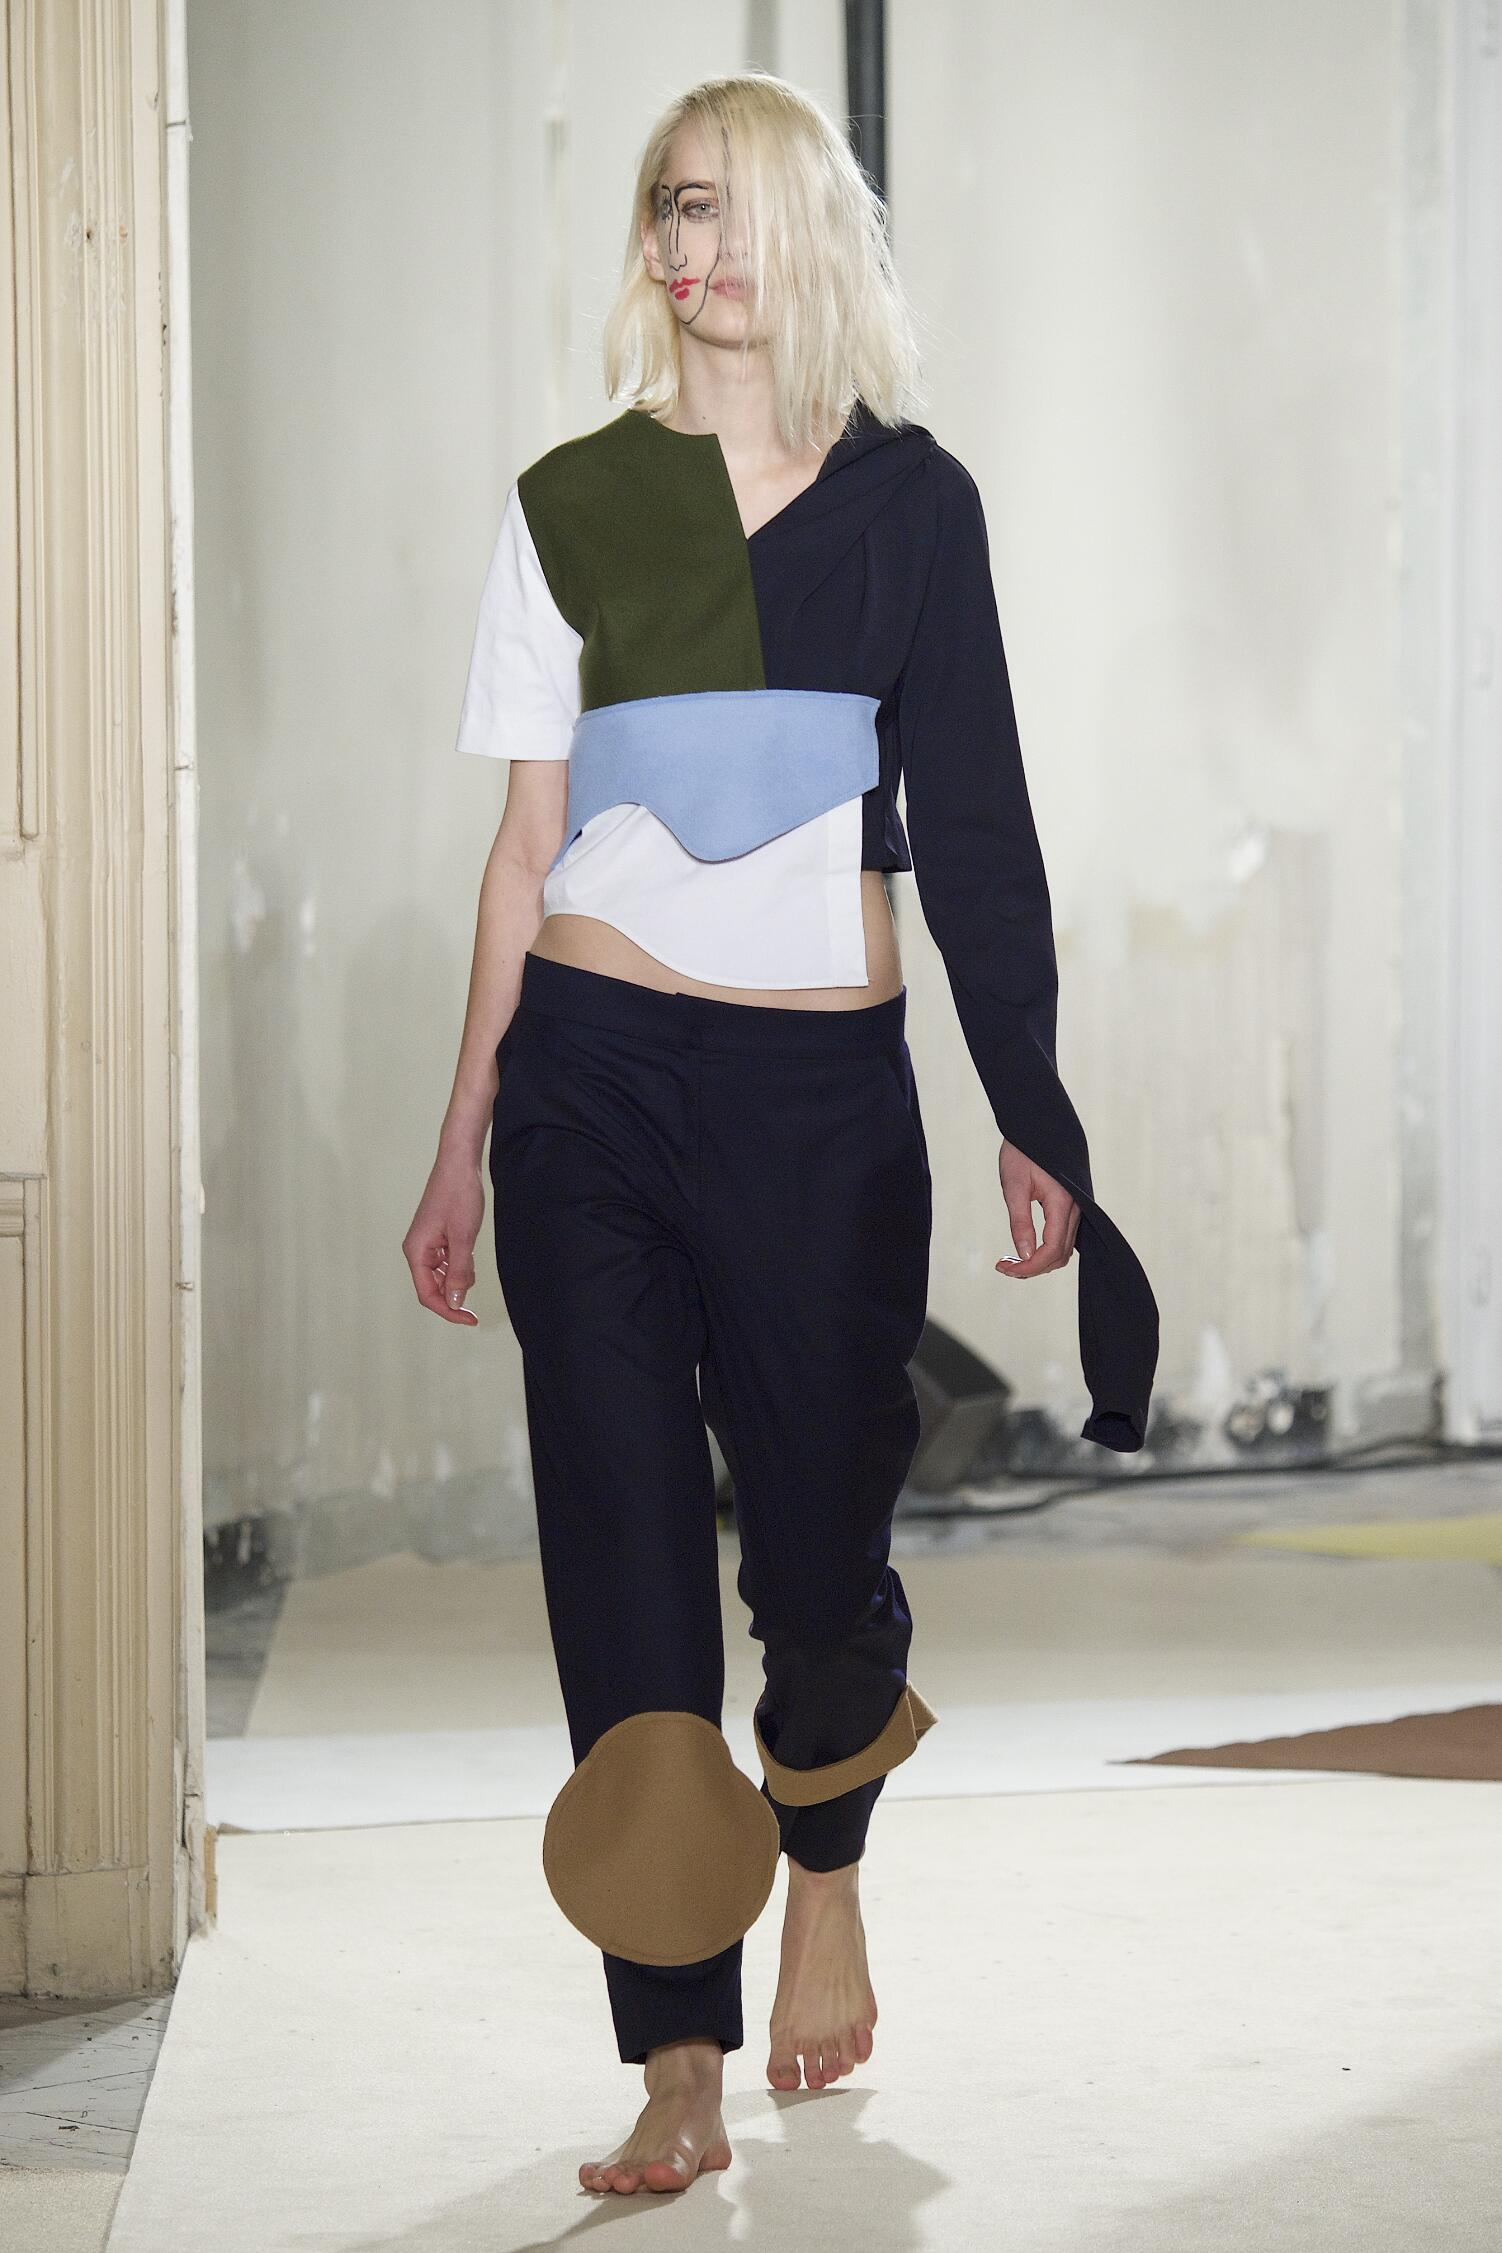 Jacquemus Women's Collection 2015 2016